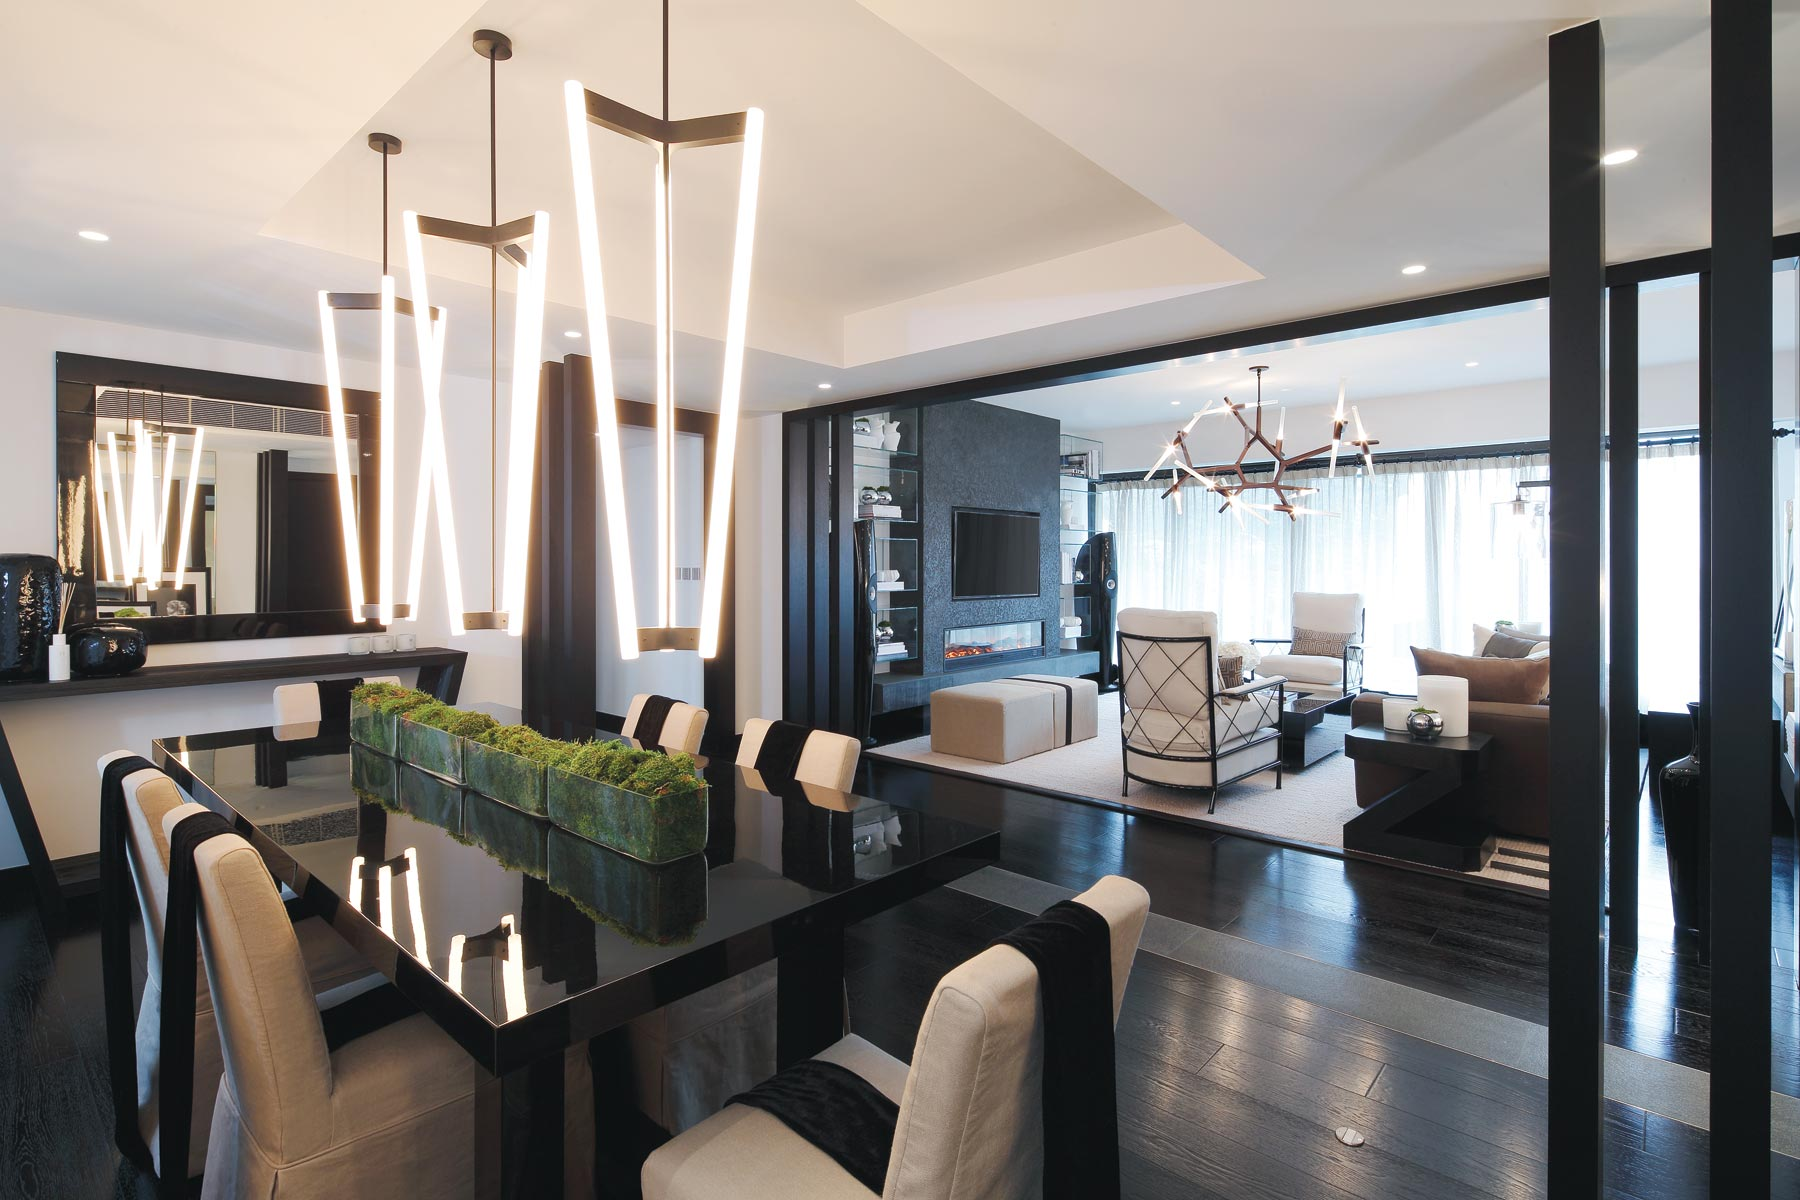 Hong Kong Apartment Interior The 10 Best Interior Design Projects By Kelly Hoppen